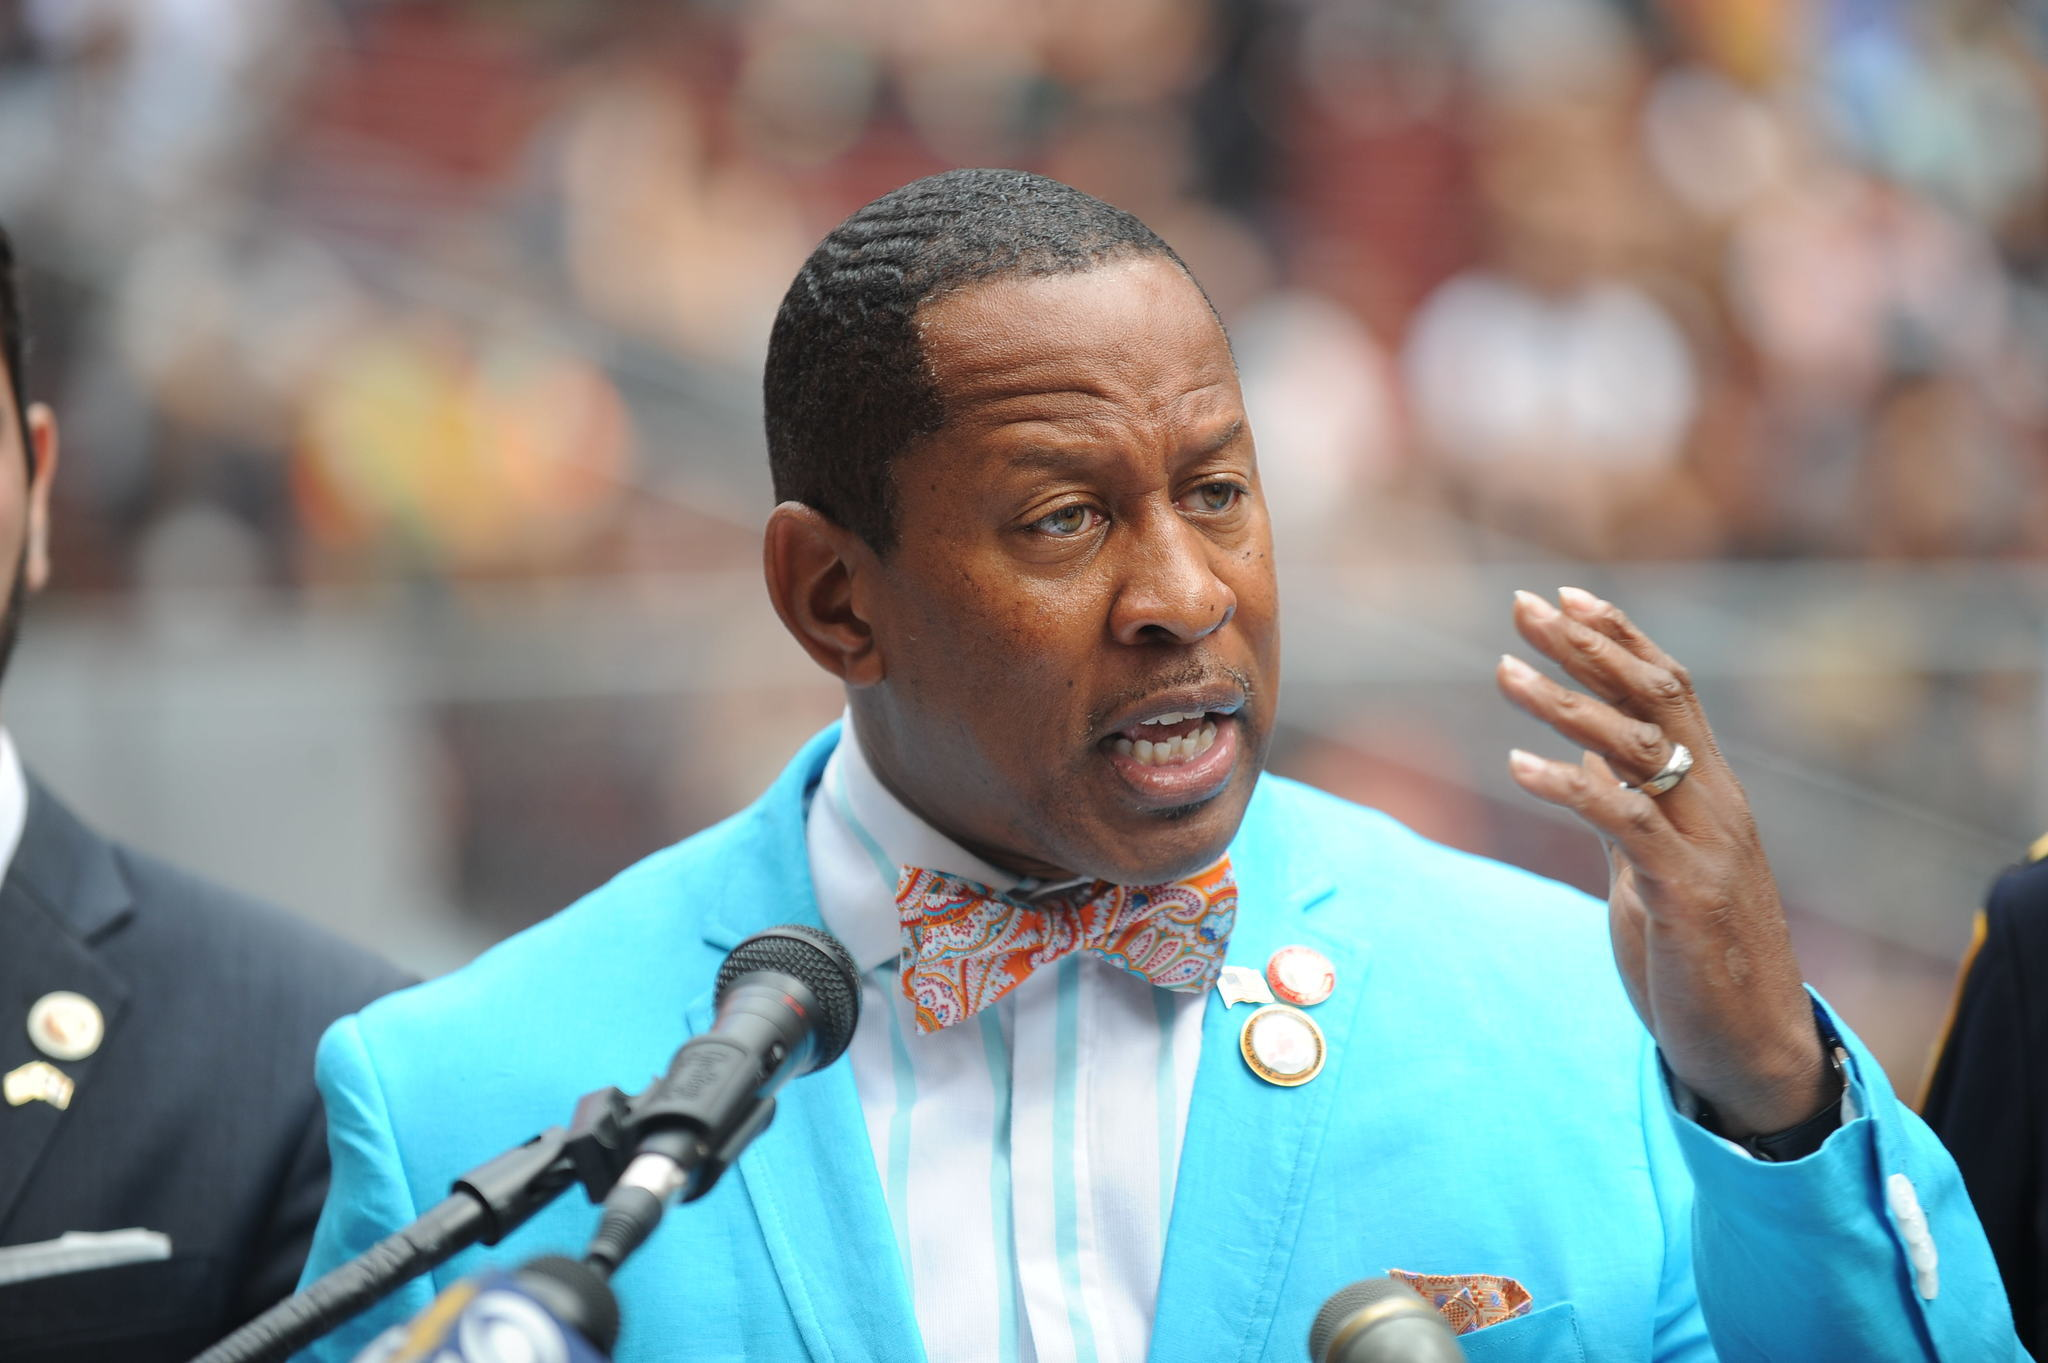 NYC Councilman Andy King faces new allegations of harassment and misuse of public funds